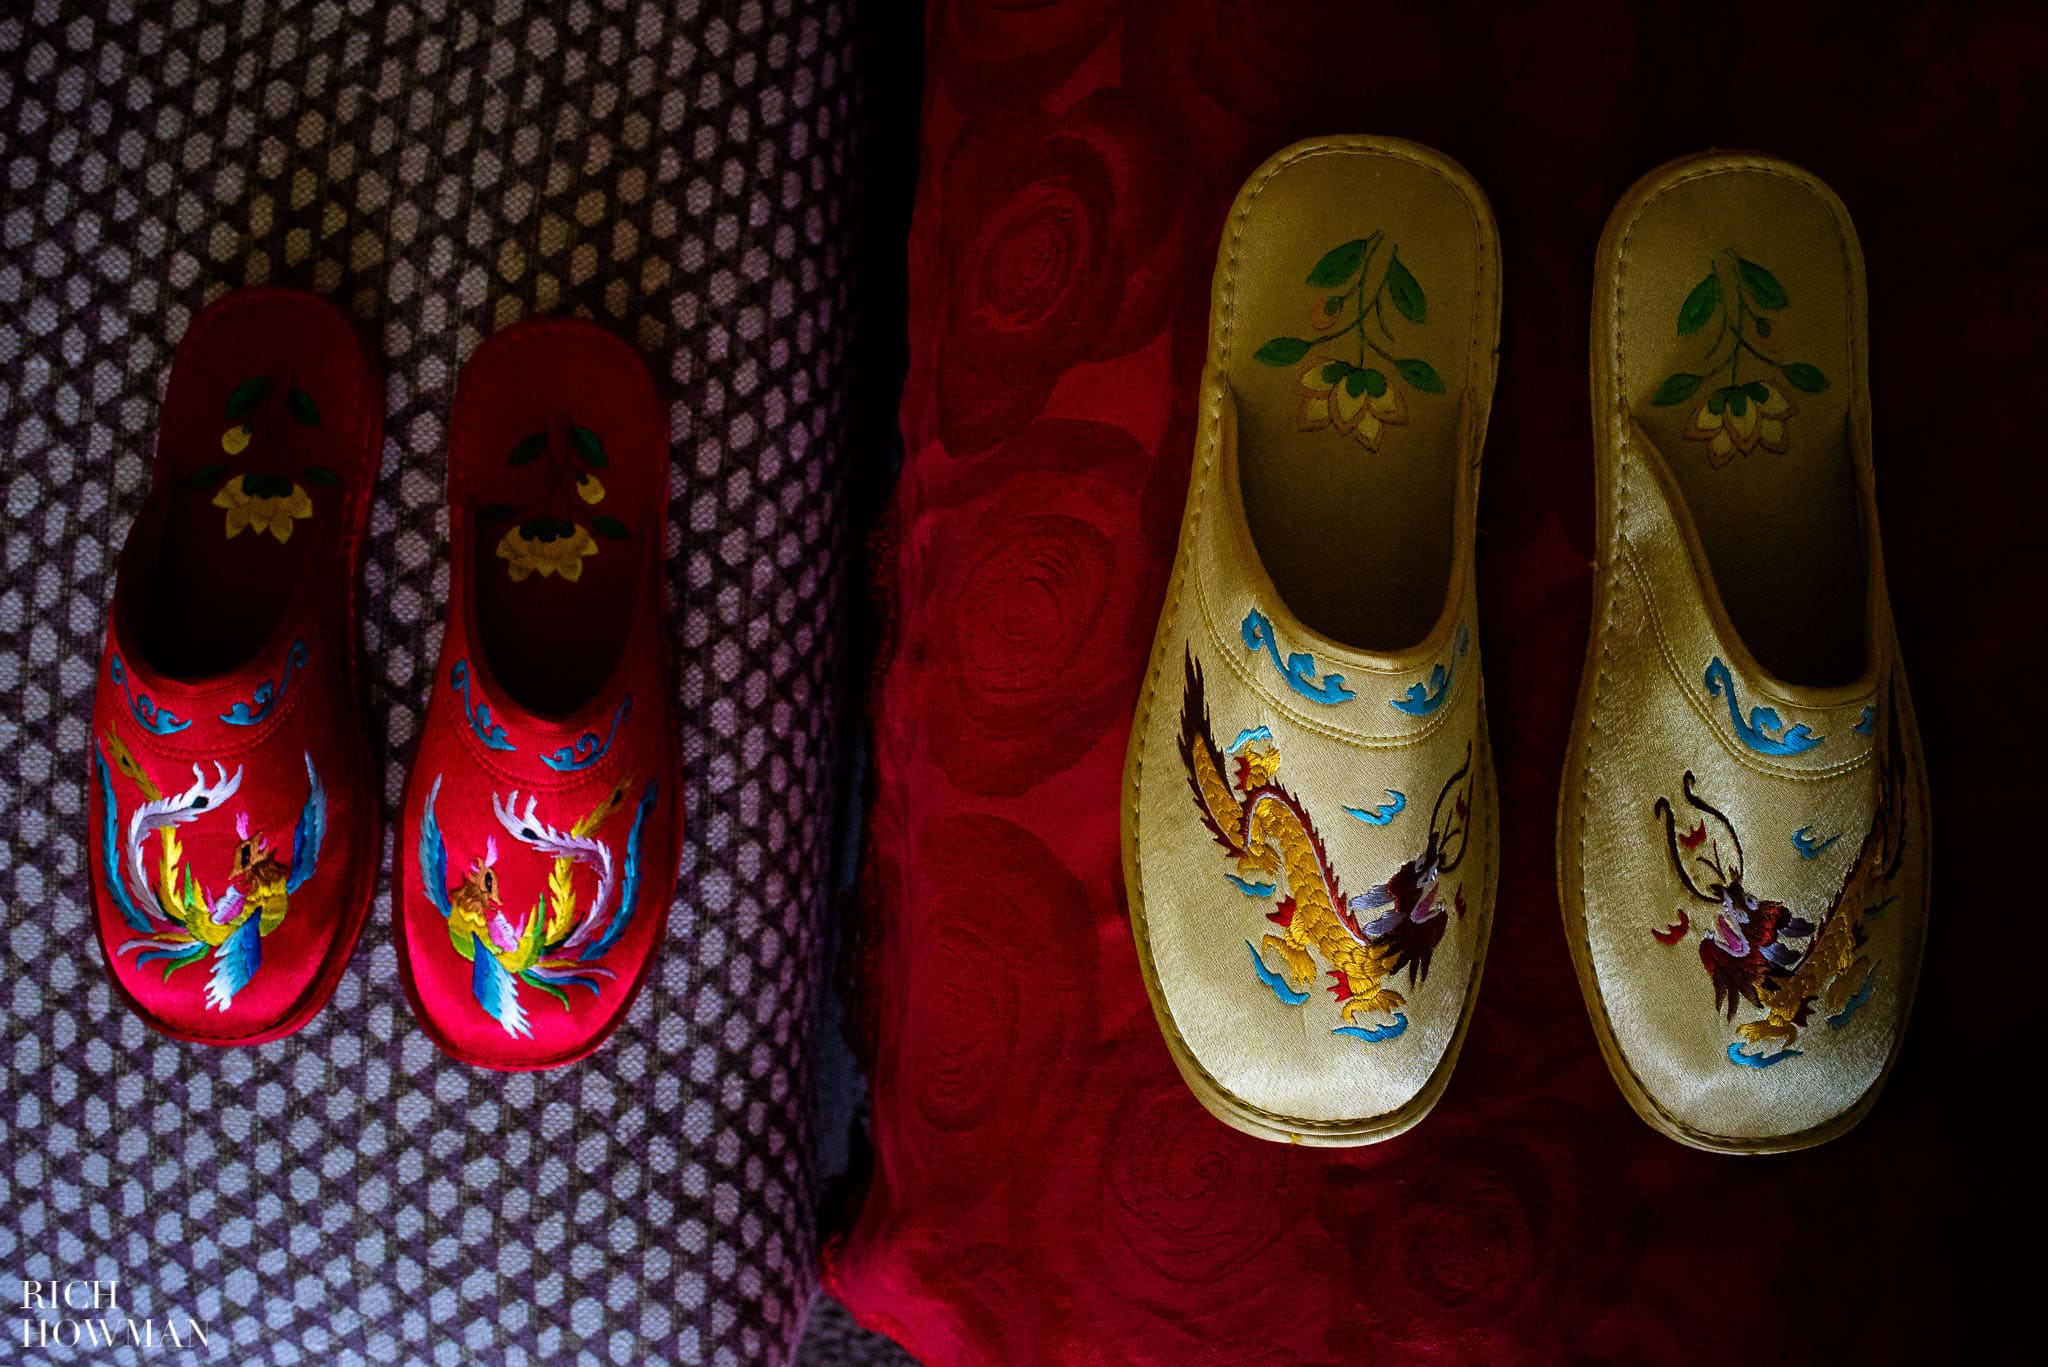 Chinese wedding slippers waiting for the bride and groom